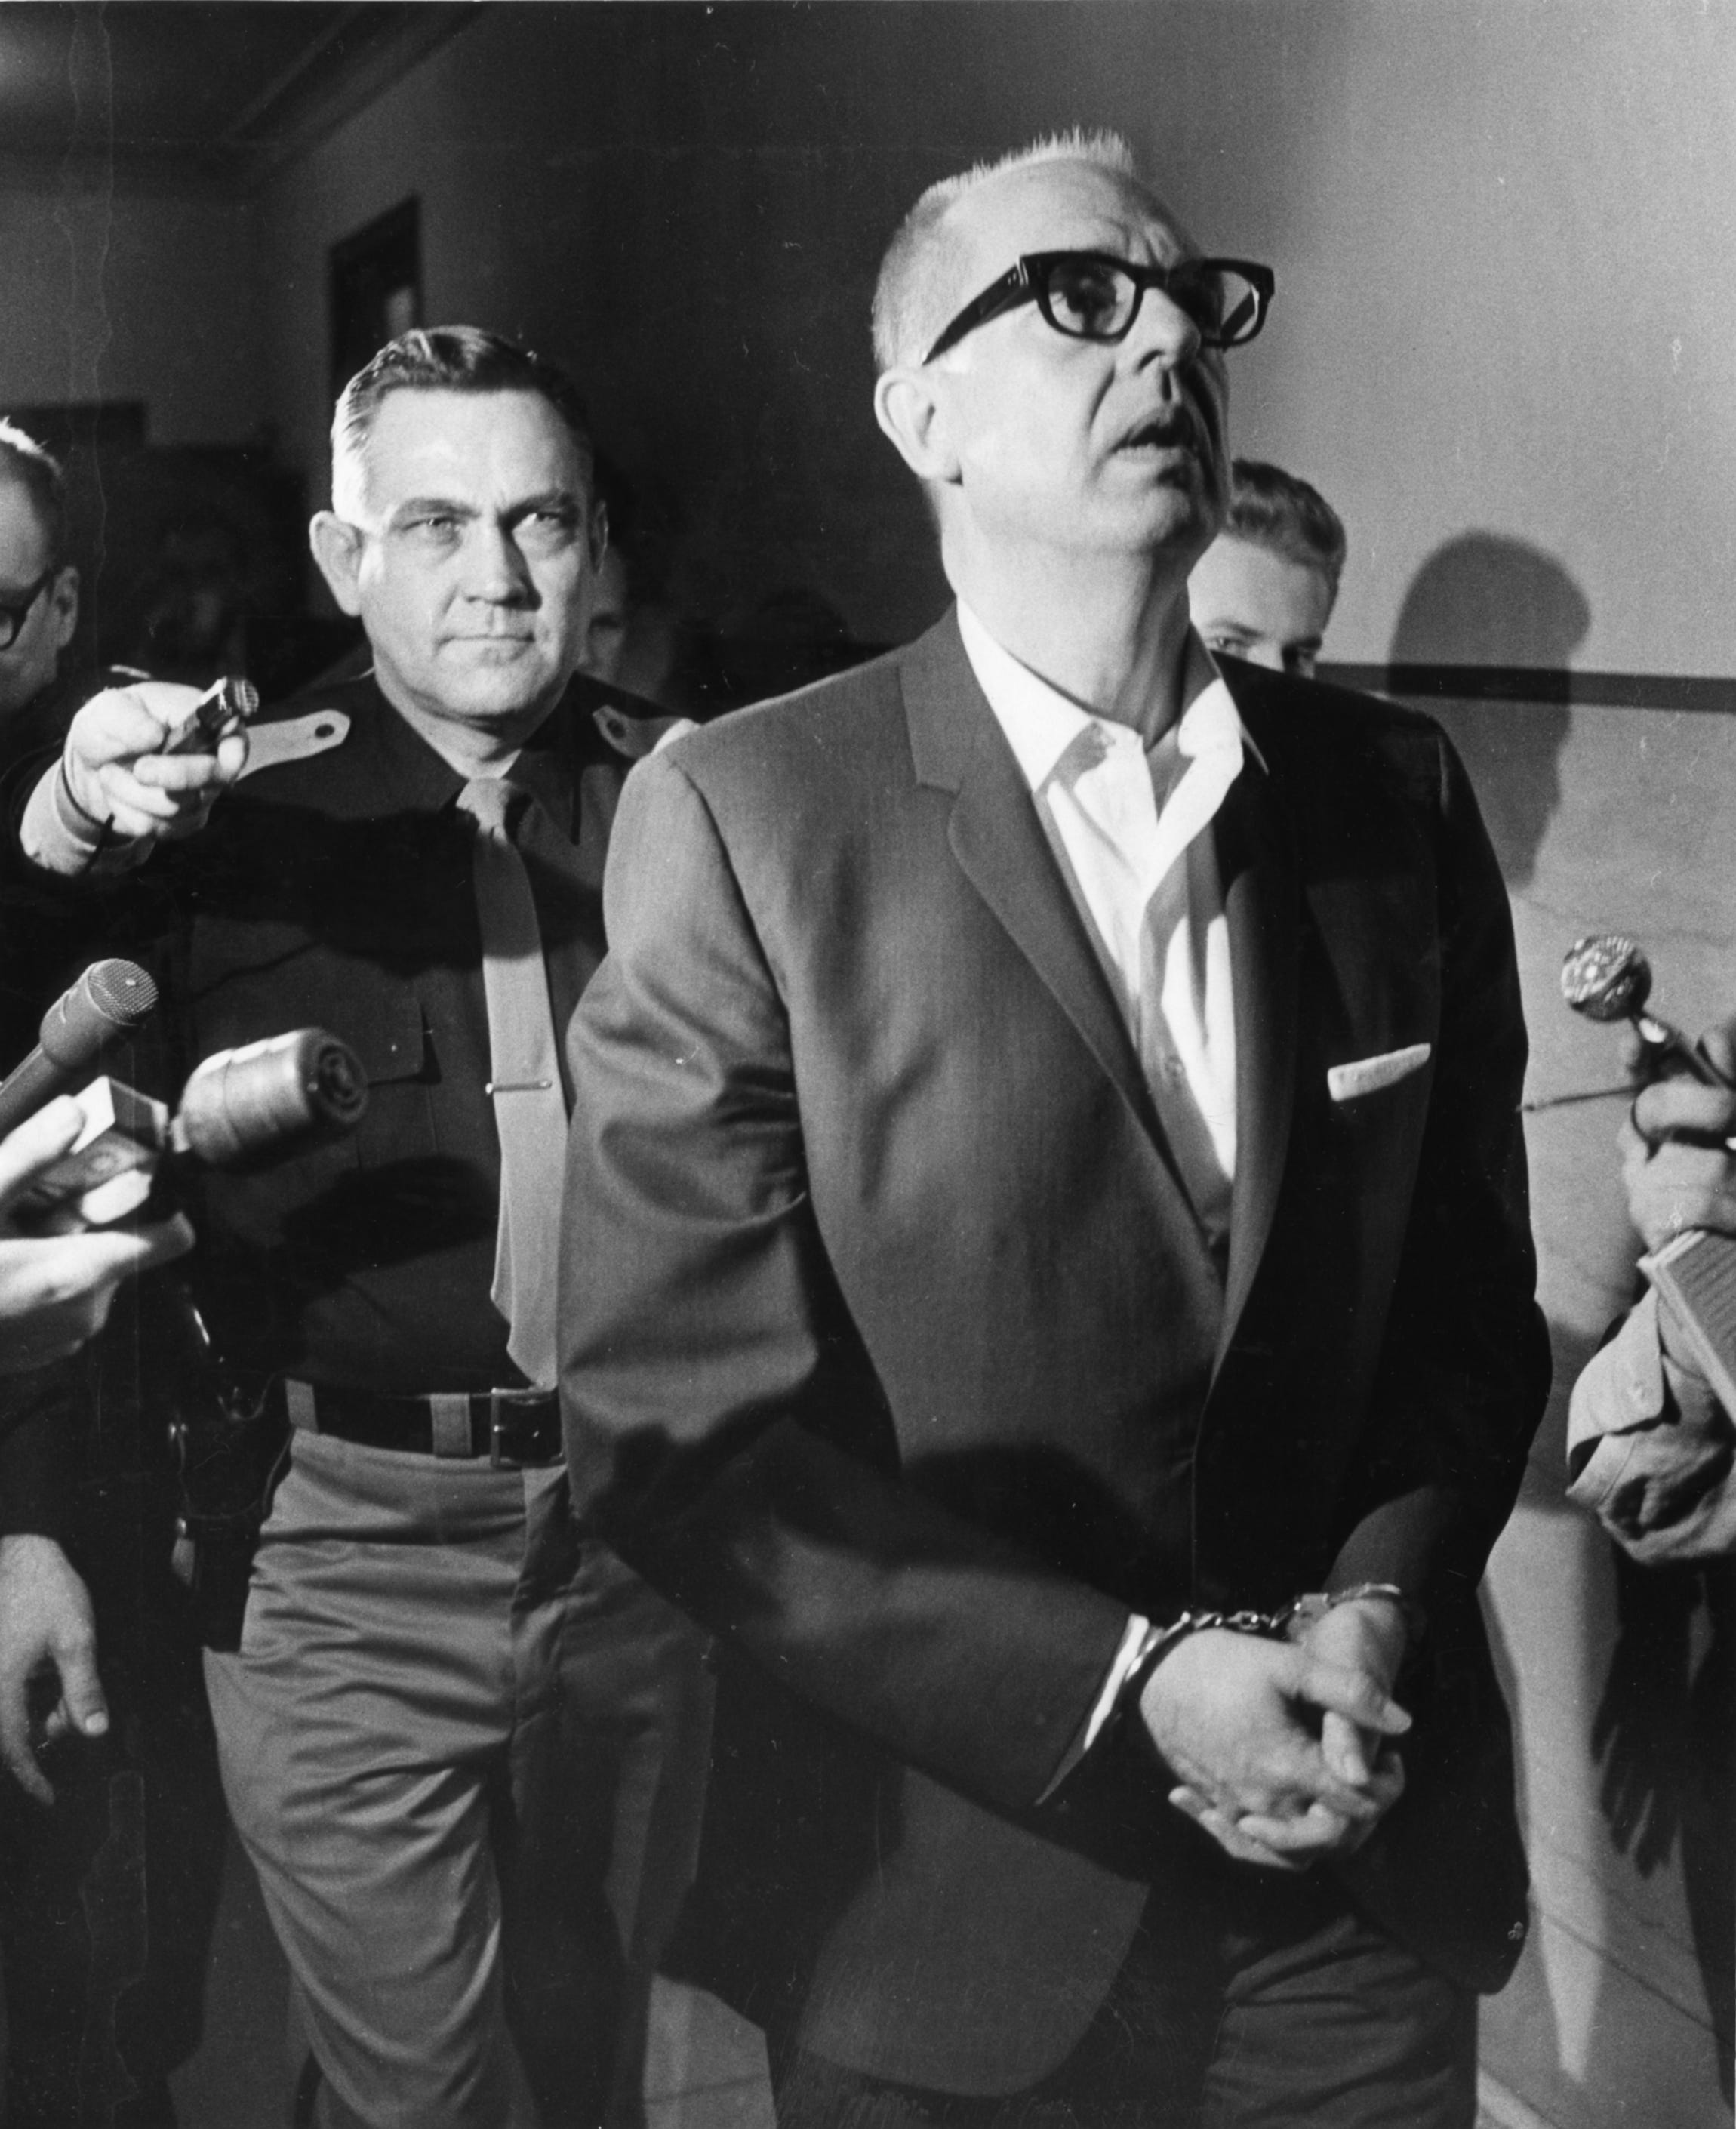 August K. Bergenthal, a wealthy suburban Milwaukee business executive, is led from the courtroom after a jury found him sane when he shot and killed Universal Foods Chairman Russell D.L. Wirth in the latter's East Side home on Sept. 20, 1968. Bergenthal was convicted of first-degree murder; the jury ruled he was sane on April 14, 1969.